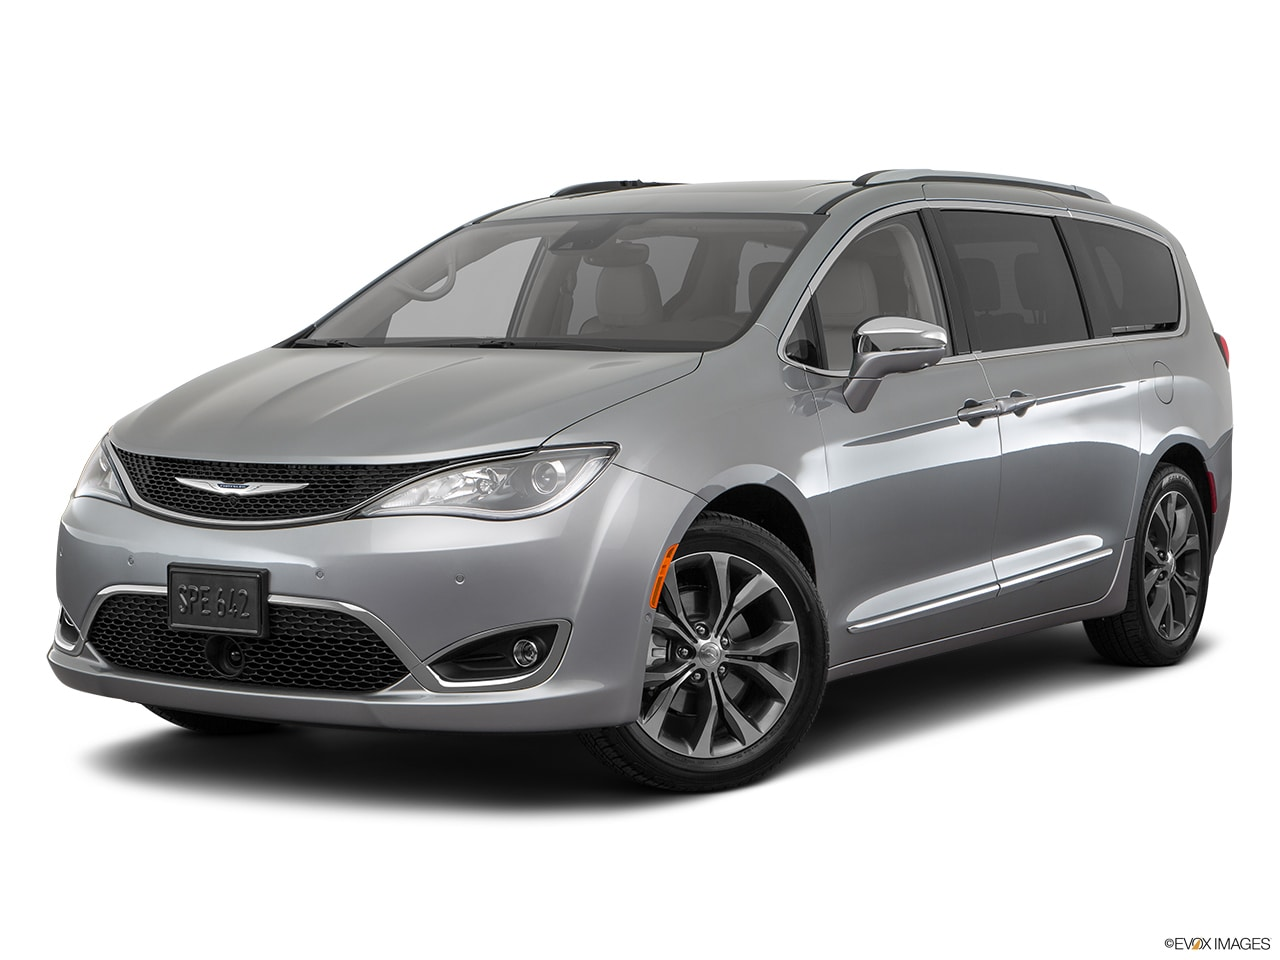 Chrysler Pacifica Lease >> 2018 Chrysler Pacifica Lease Deal Special Offers Incentives